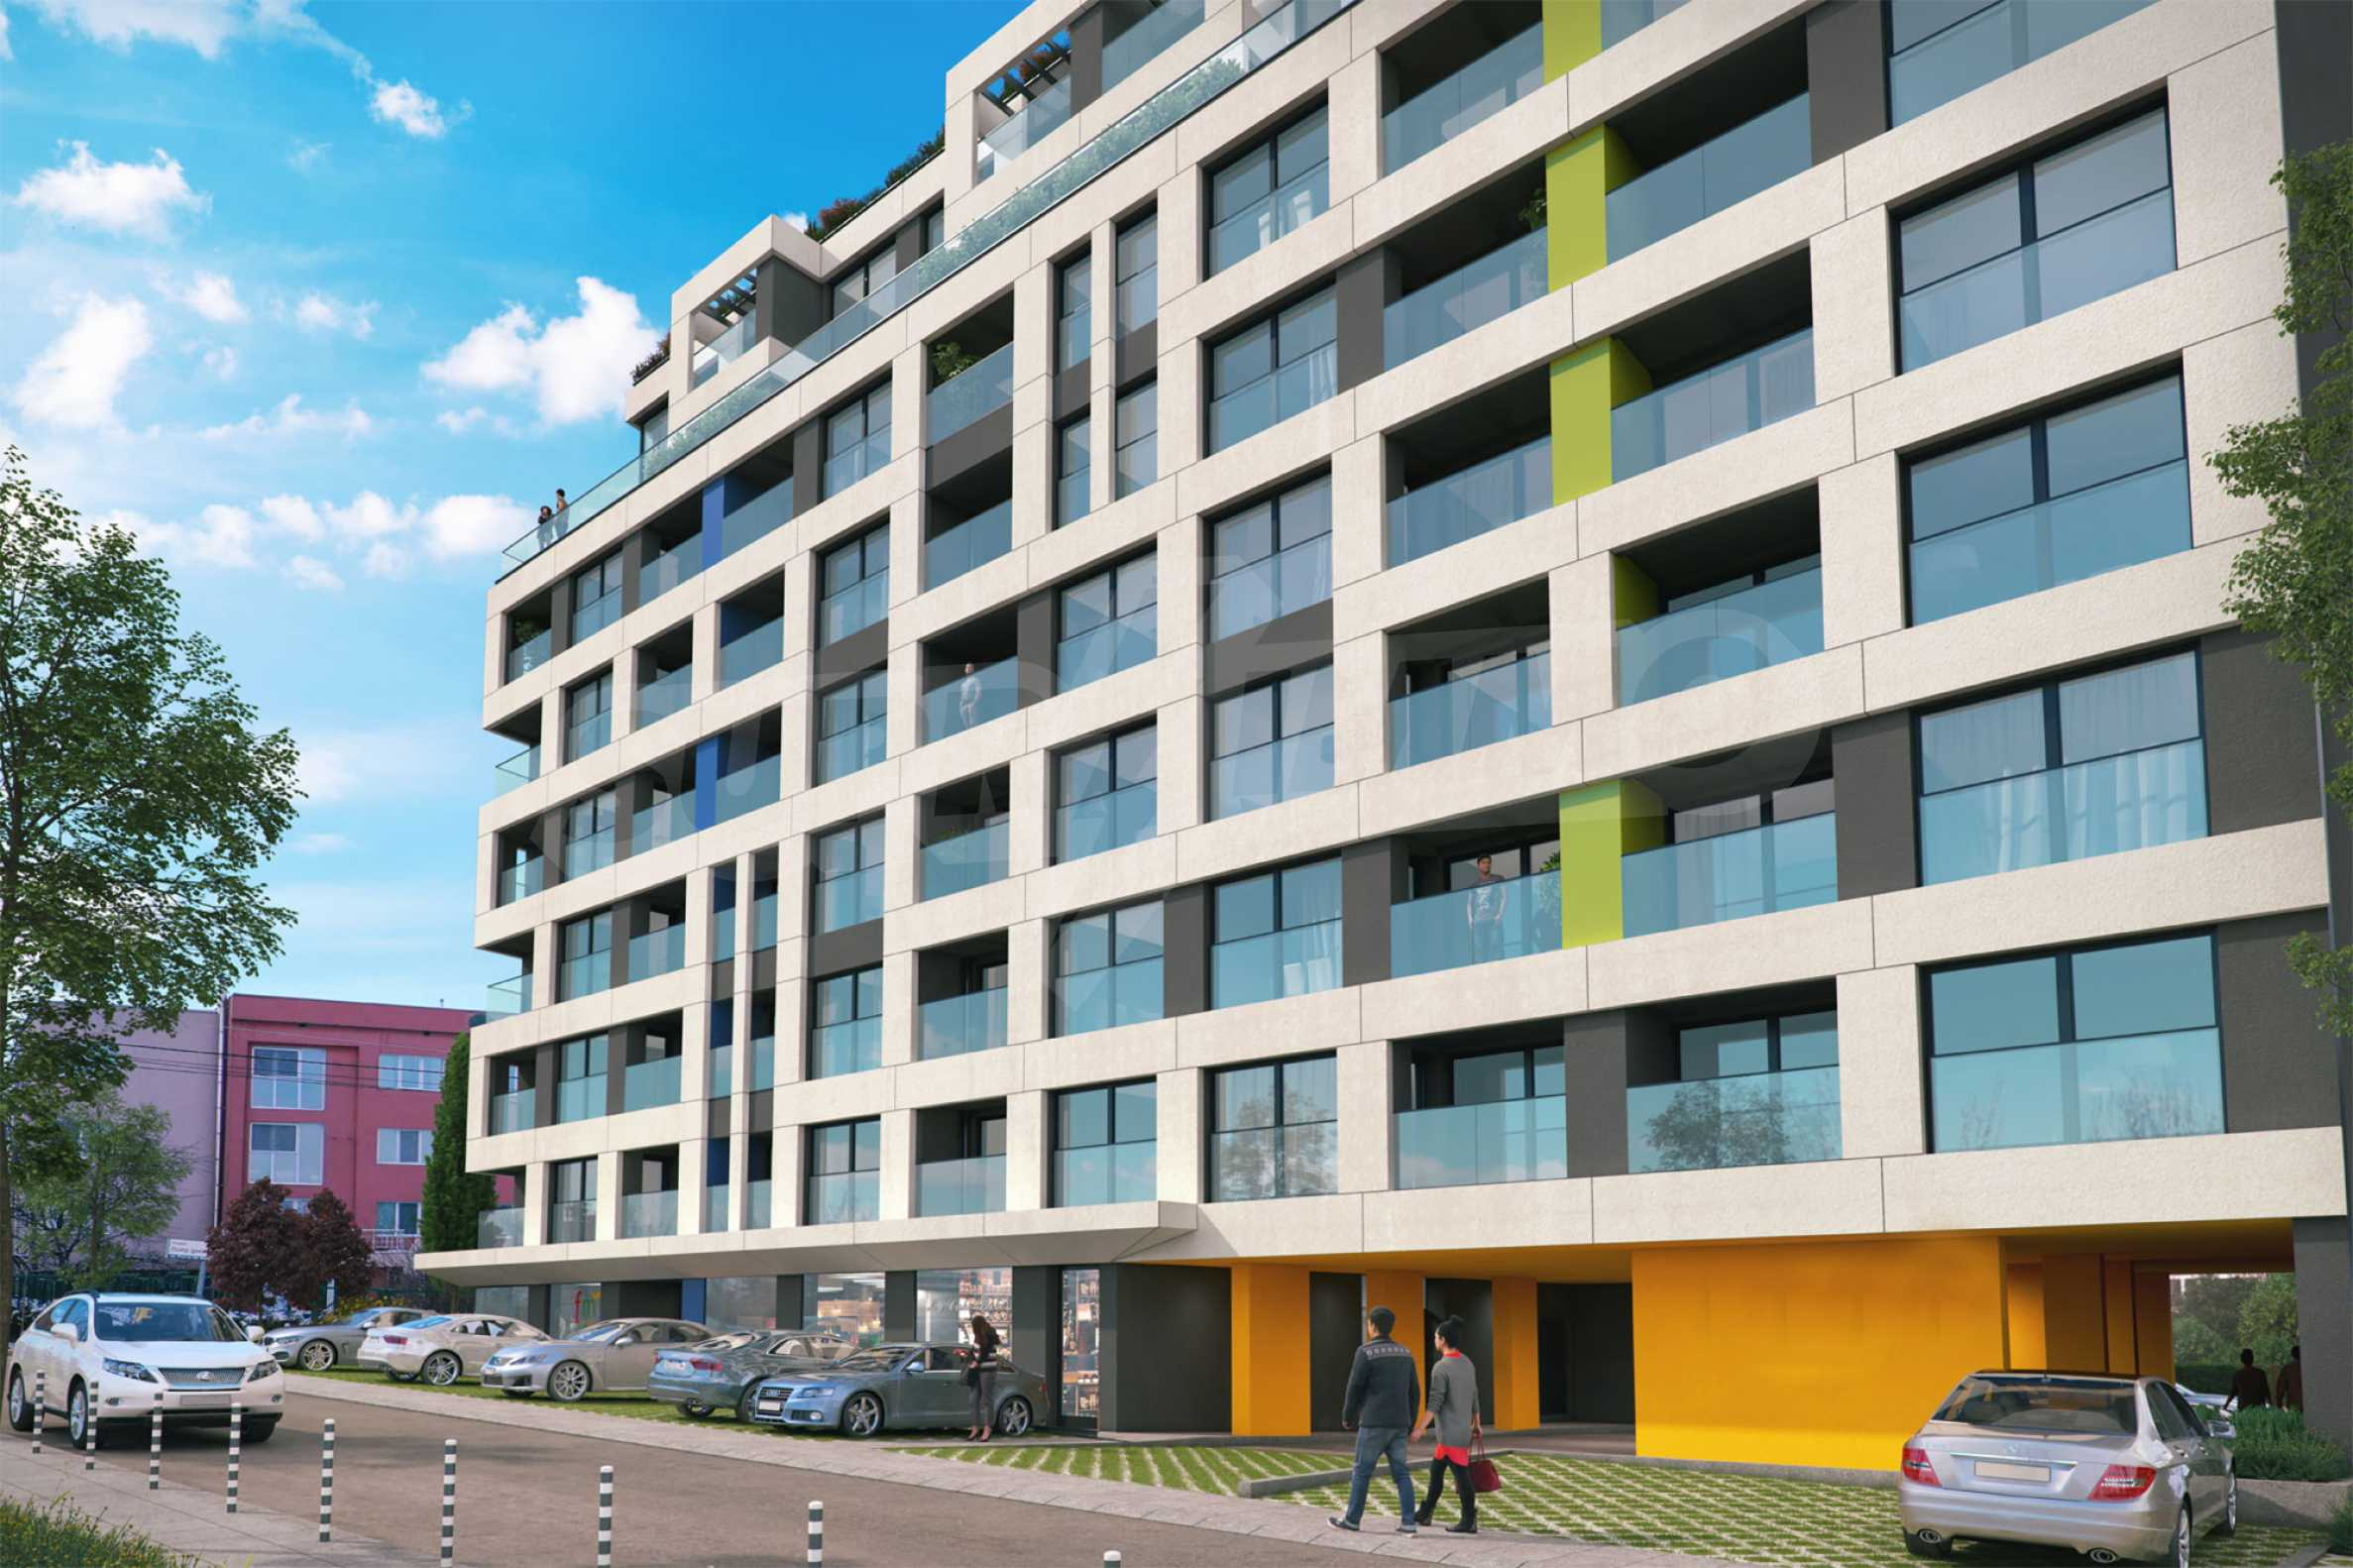 New building with apartments and shops near NBU at attractive prices